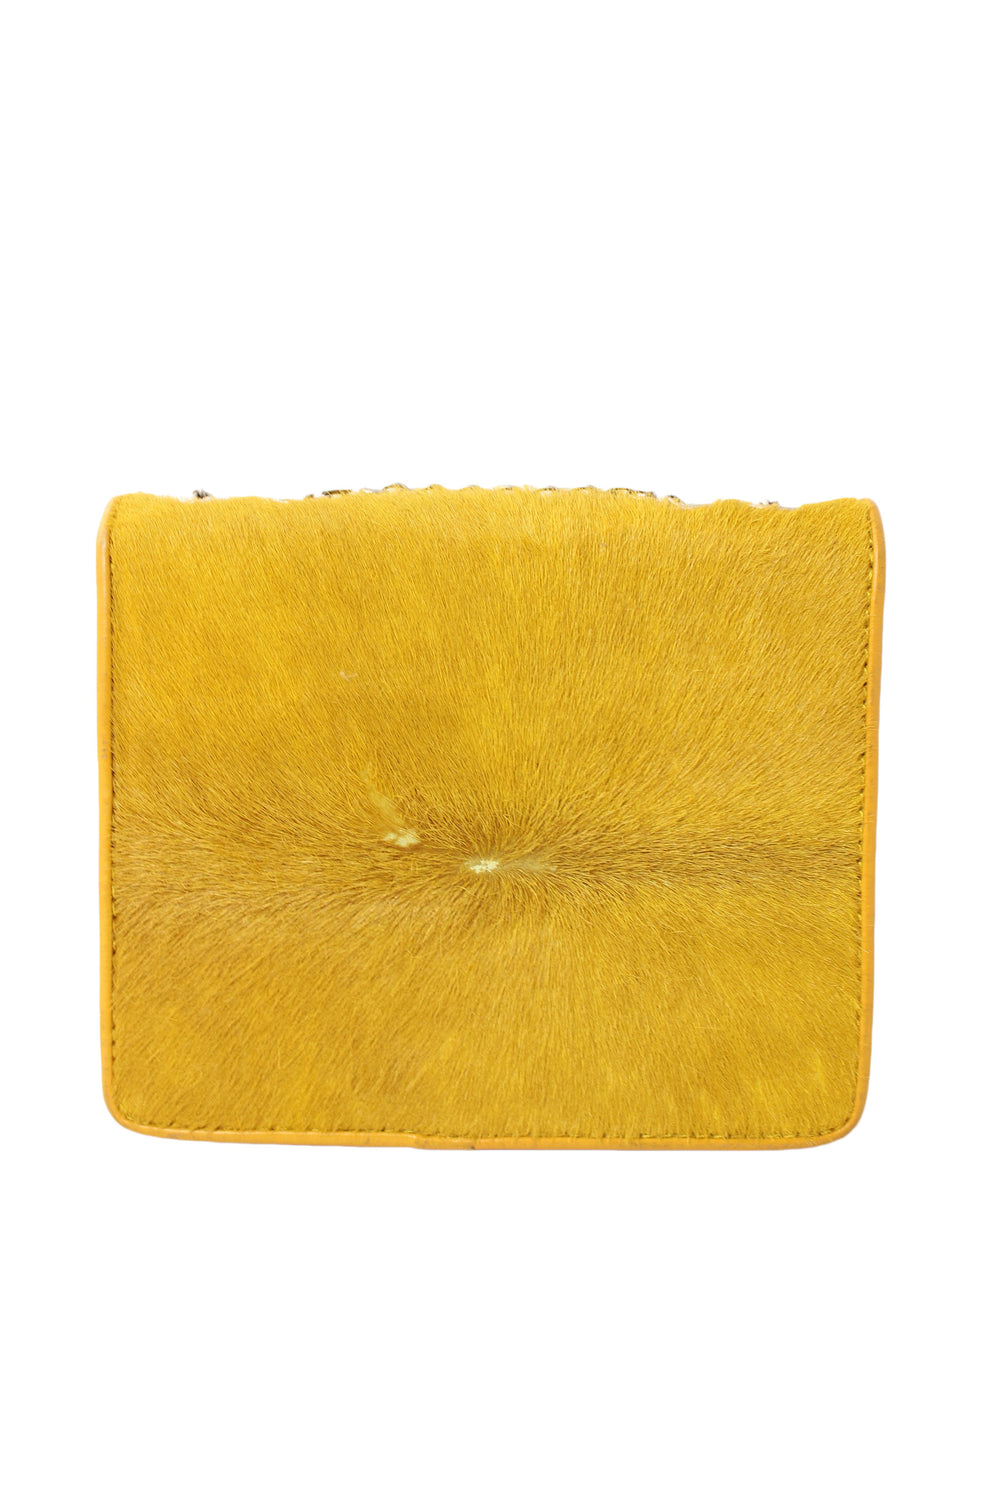 unlabeled yellow calf hair purse. features chain handle and flap with magnetic snap closure.